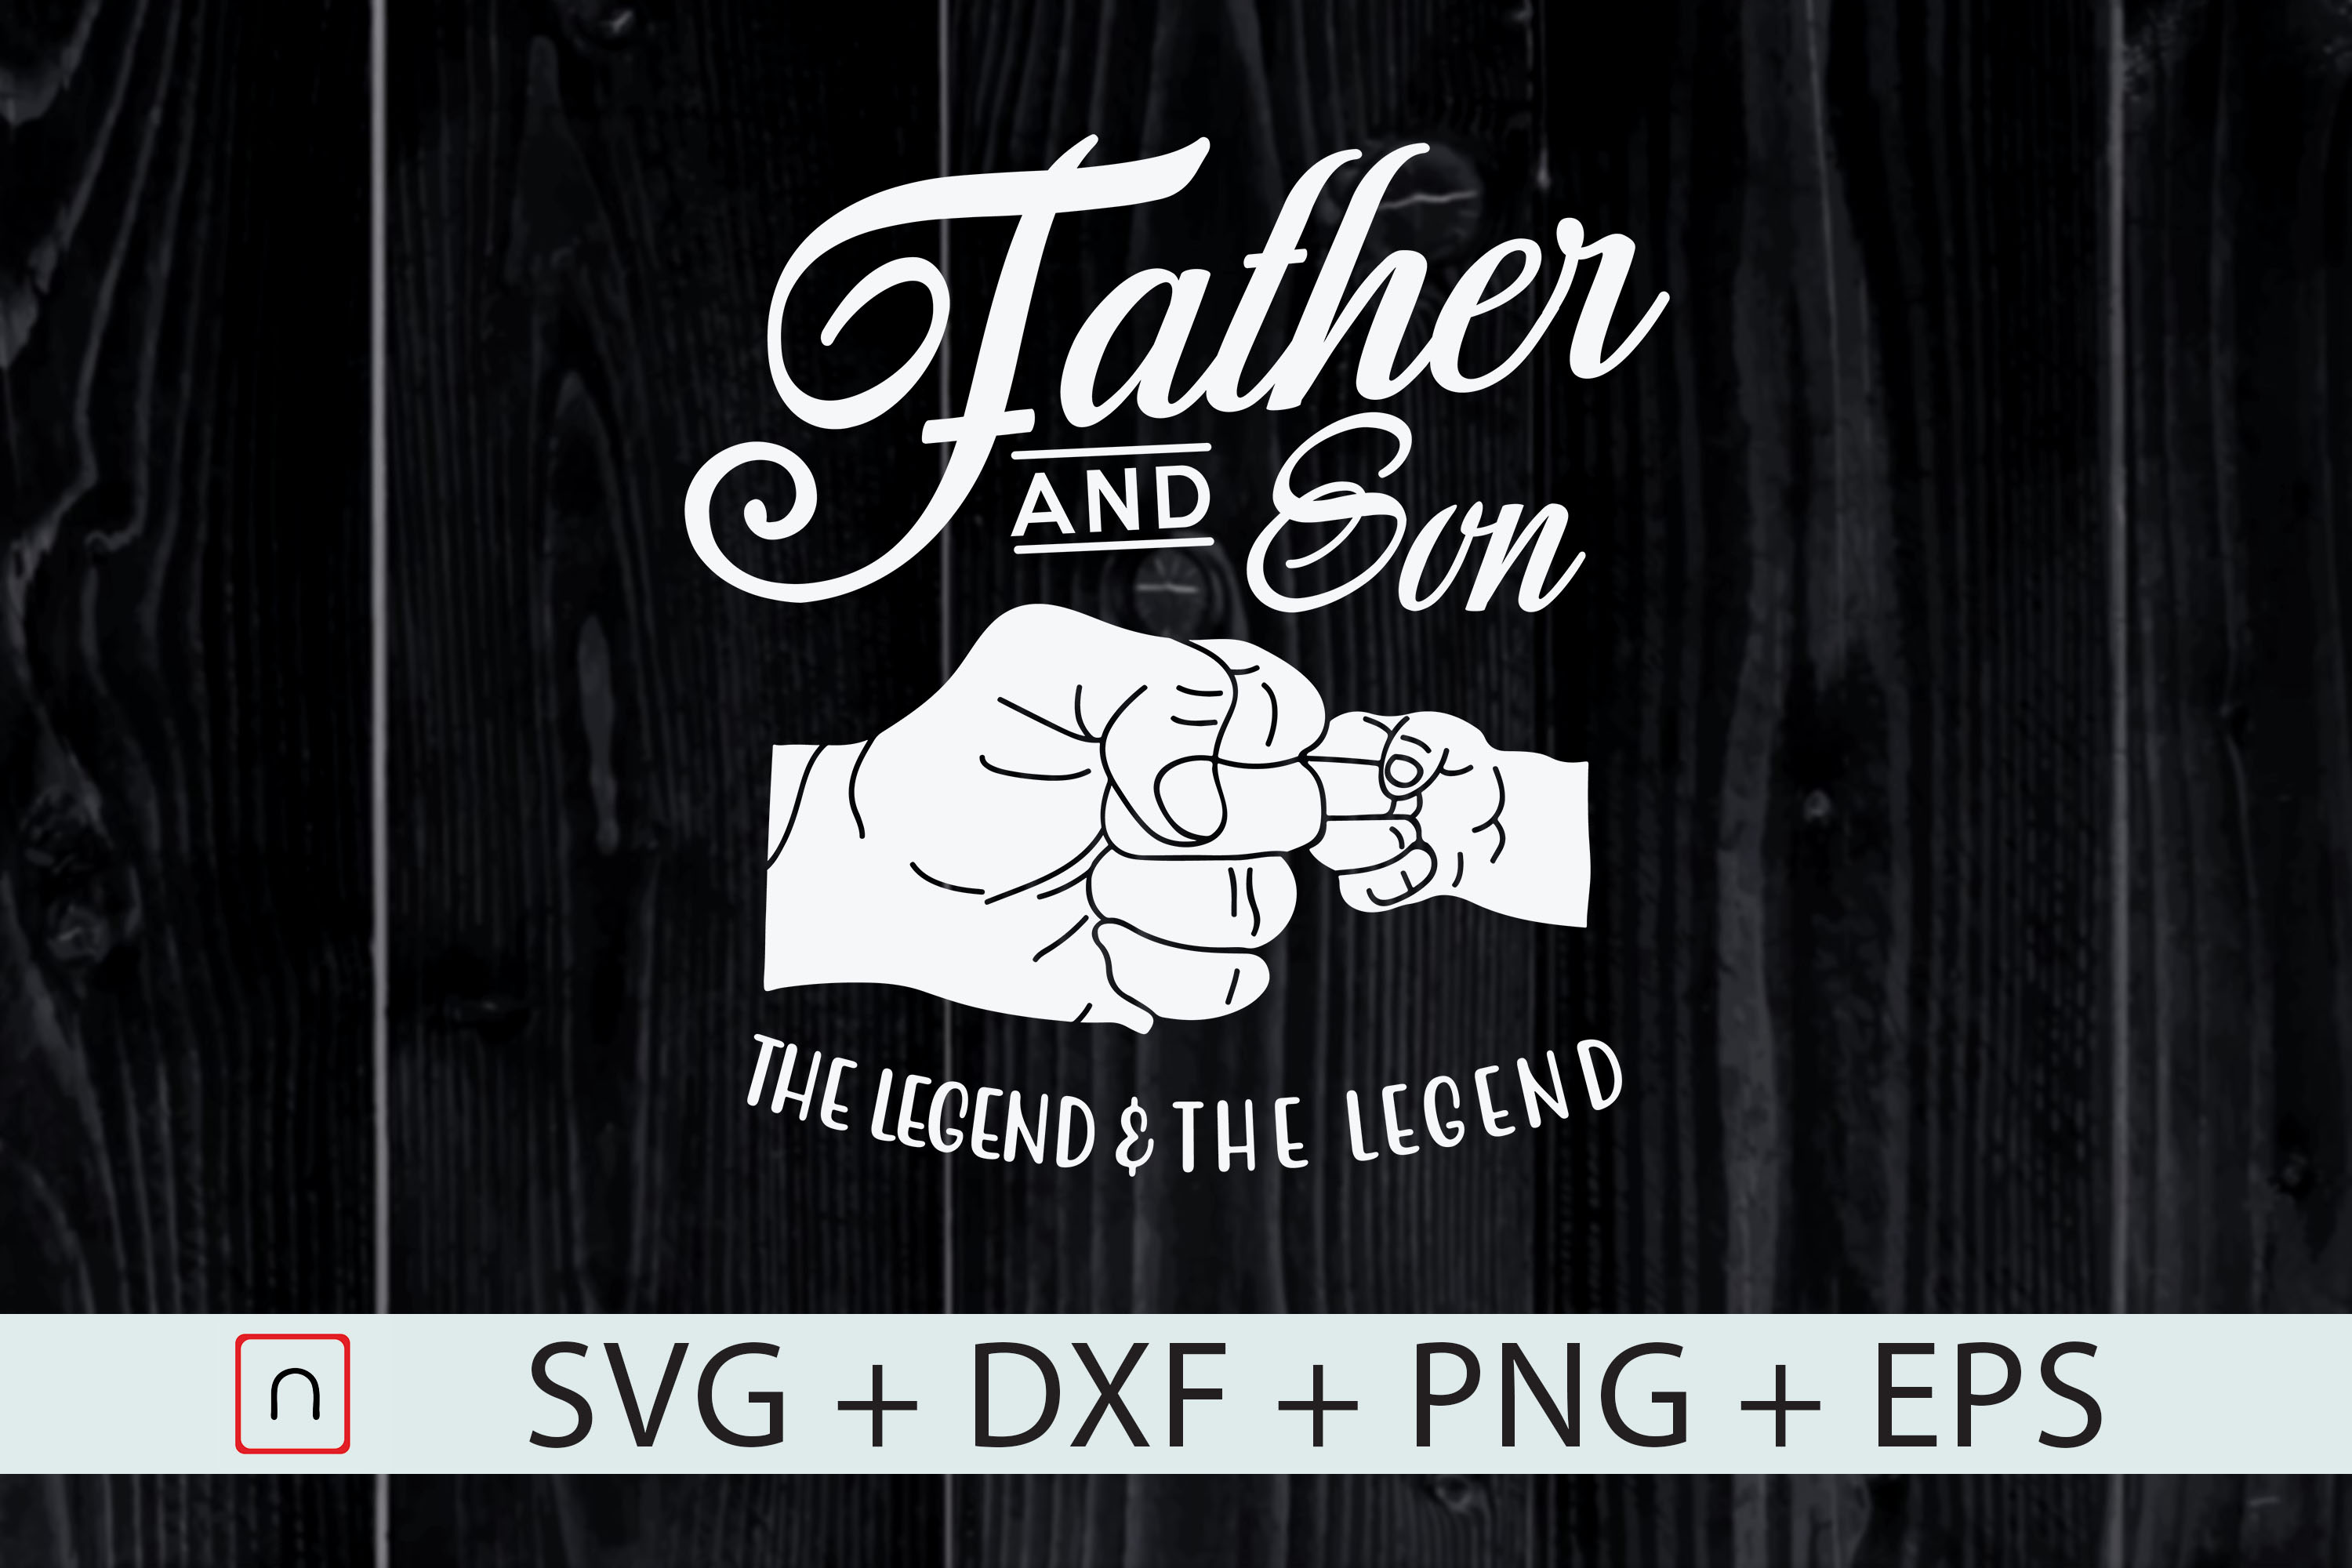 Download Free Father And Son The Legend And The Legend Graphic By Novalia for Cricut Explore, Silhouette and other cutting machines.